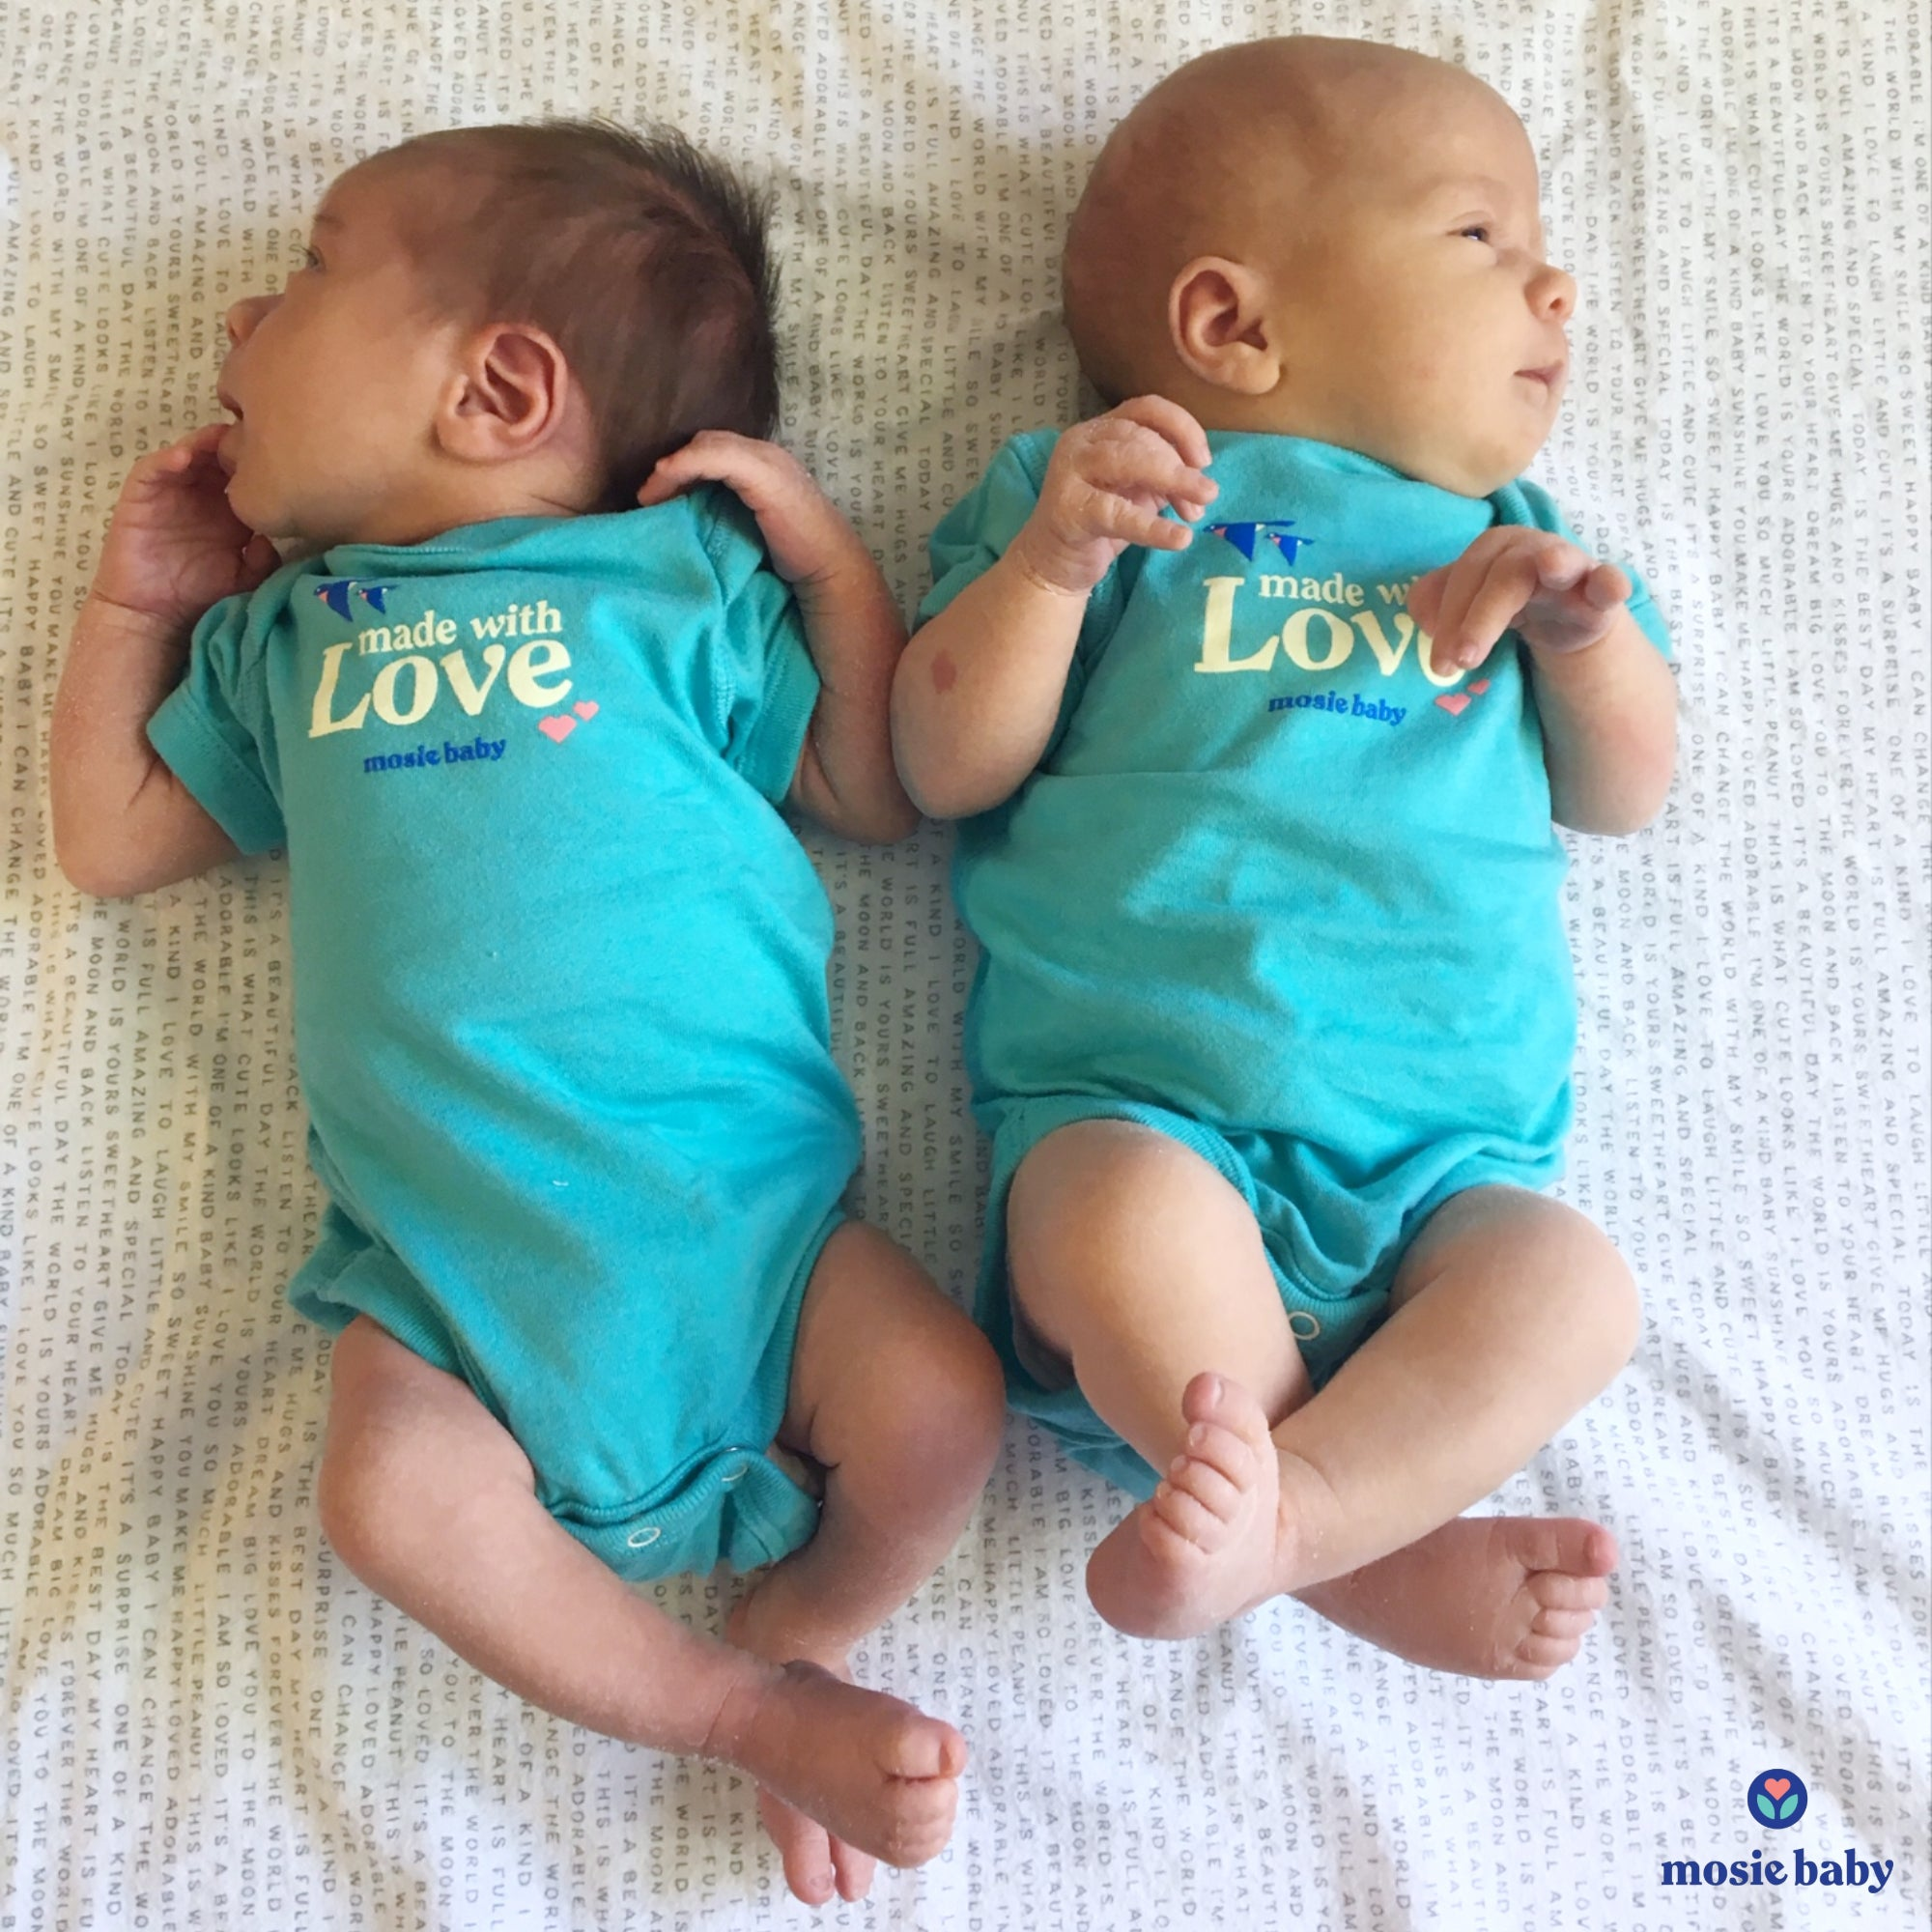 twin mosie babies in the mosie baby onesie